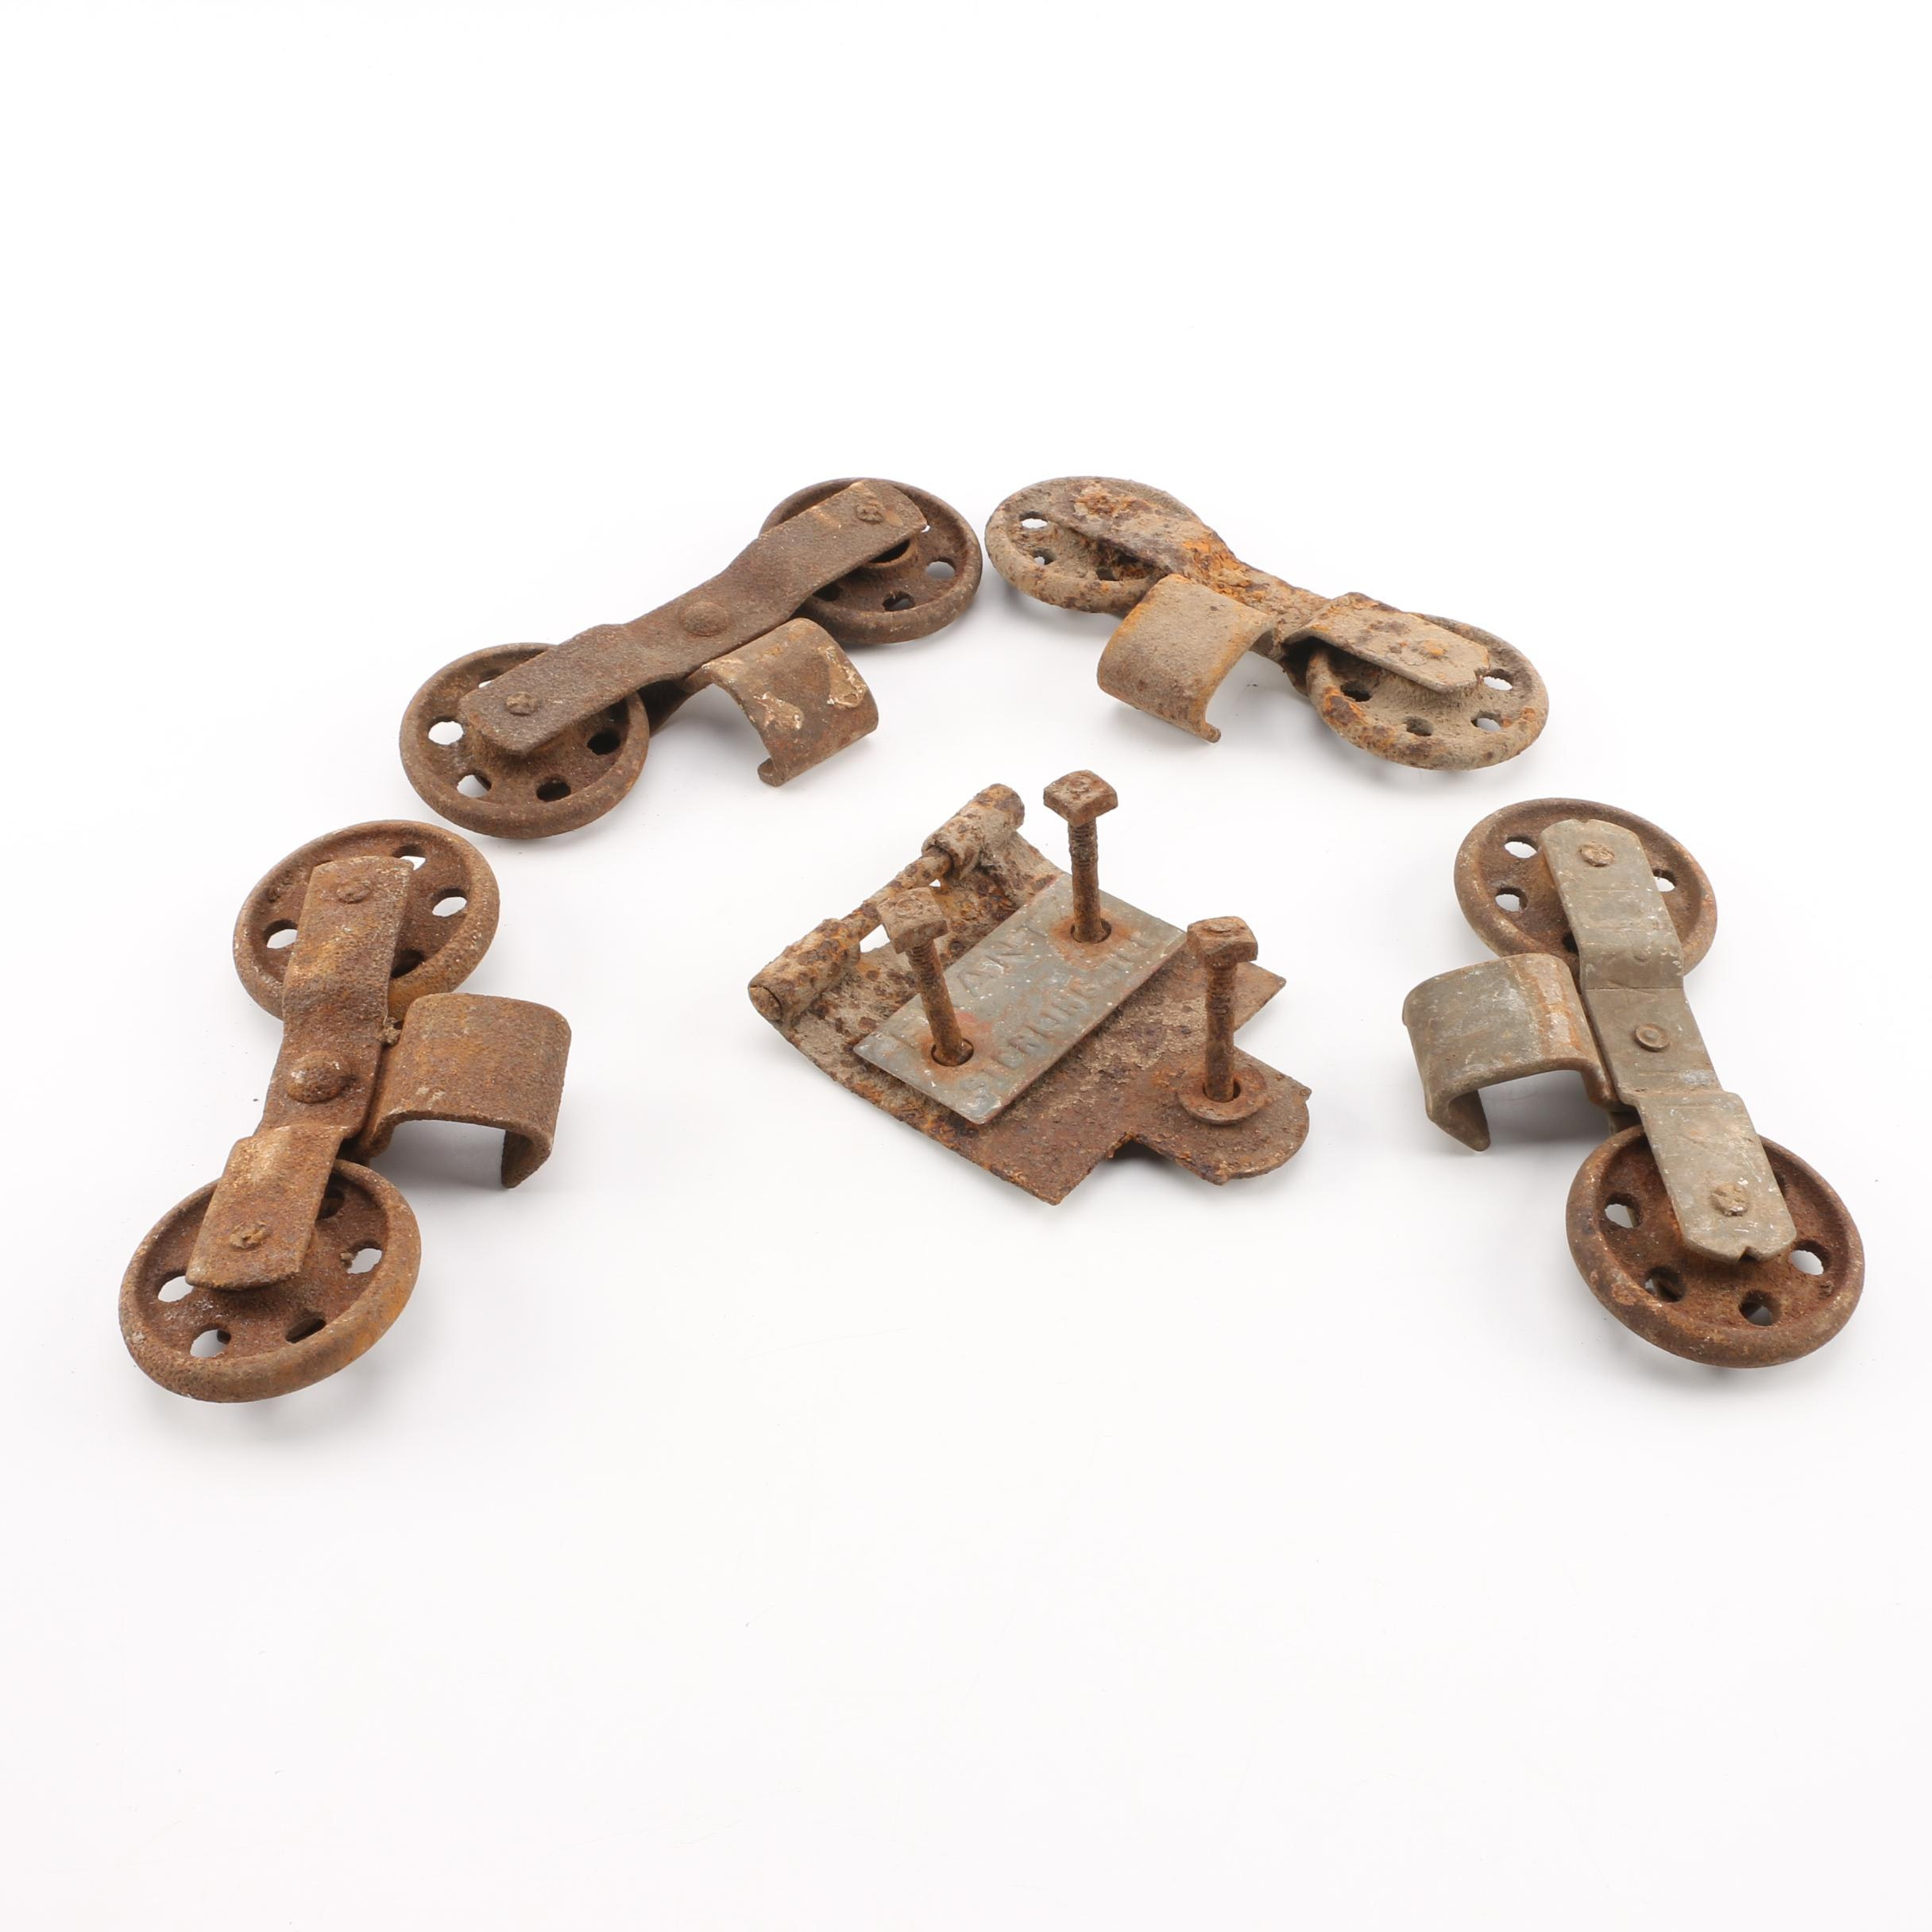 Four Cast Iron Sets of Wheels